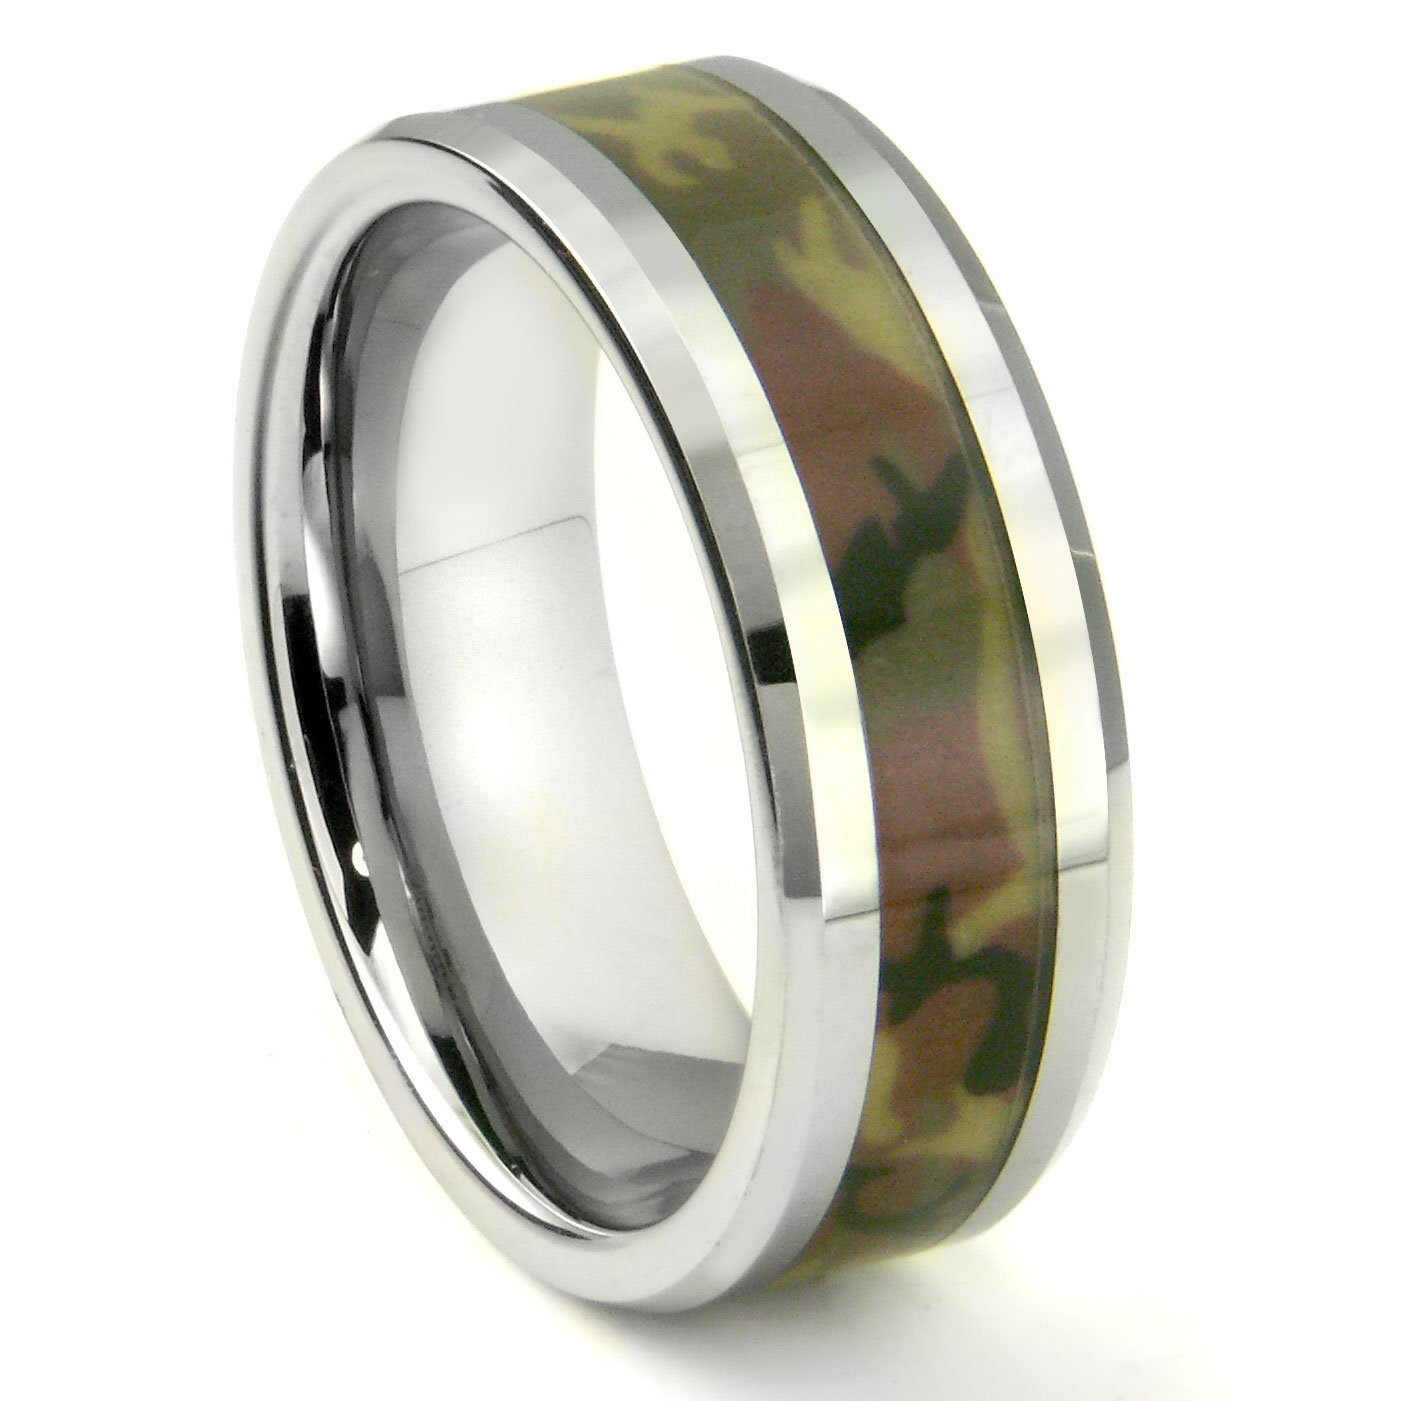 viewing of photo gallery photos pertaining wedding military rings to attachment jewelry